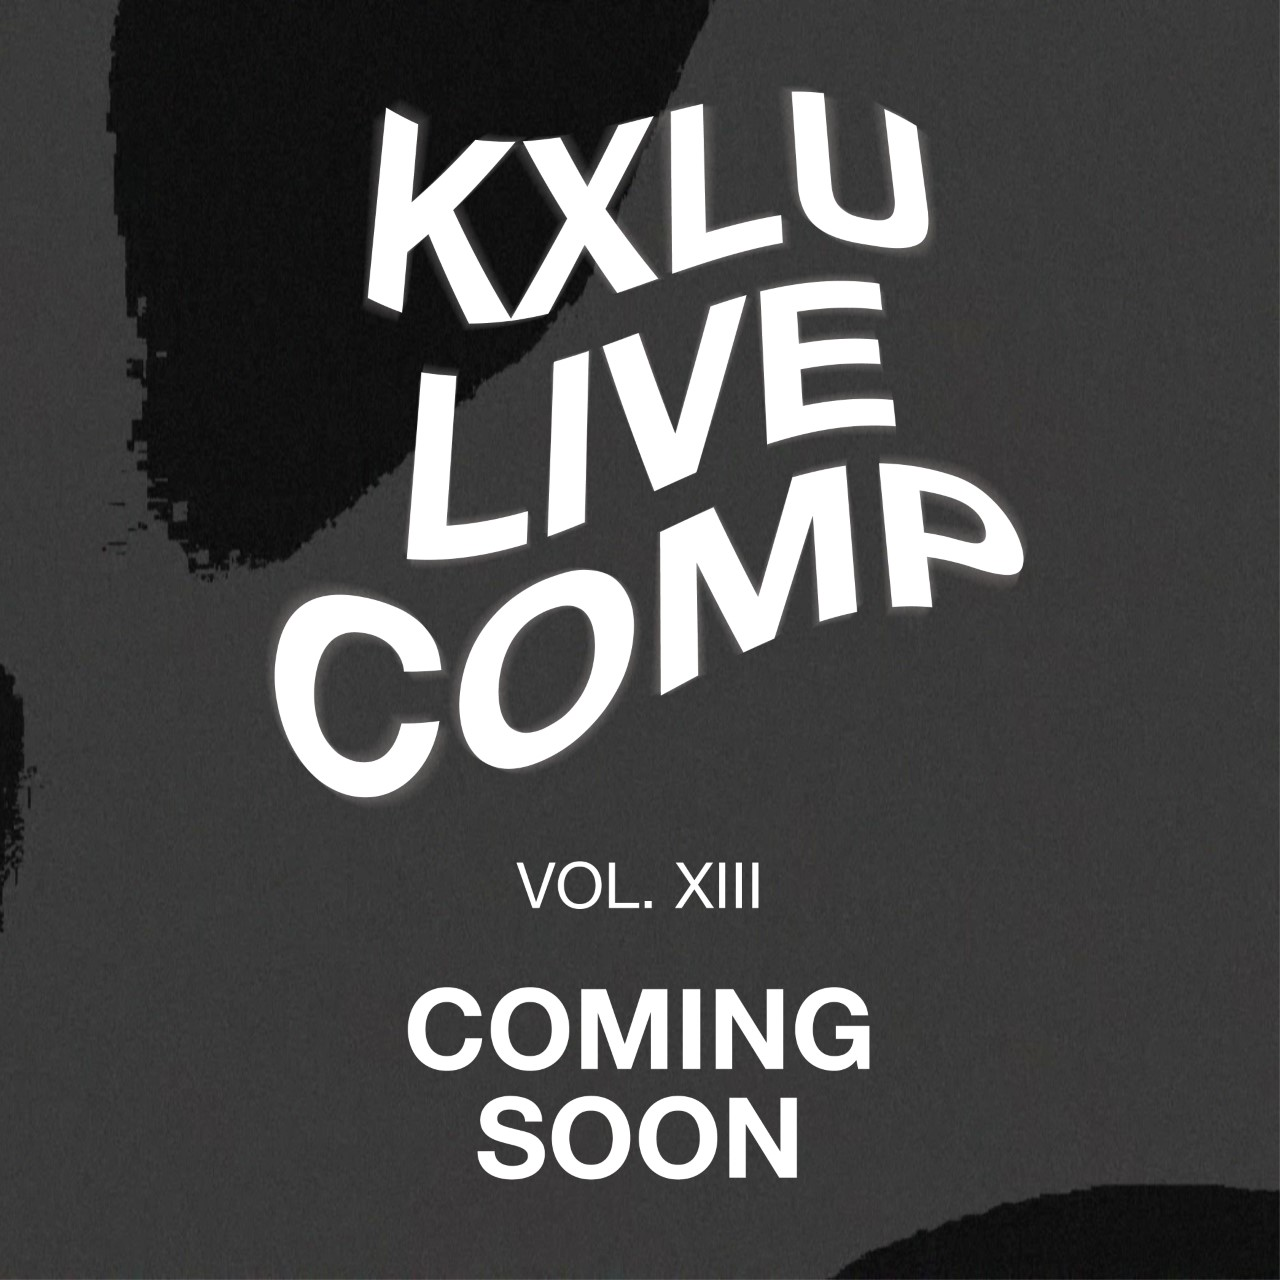 $35 Donation - KXLU Live Compilation Vol. 13 Vinyl Record Thank You Gift